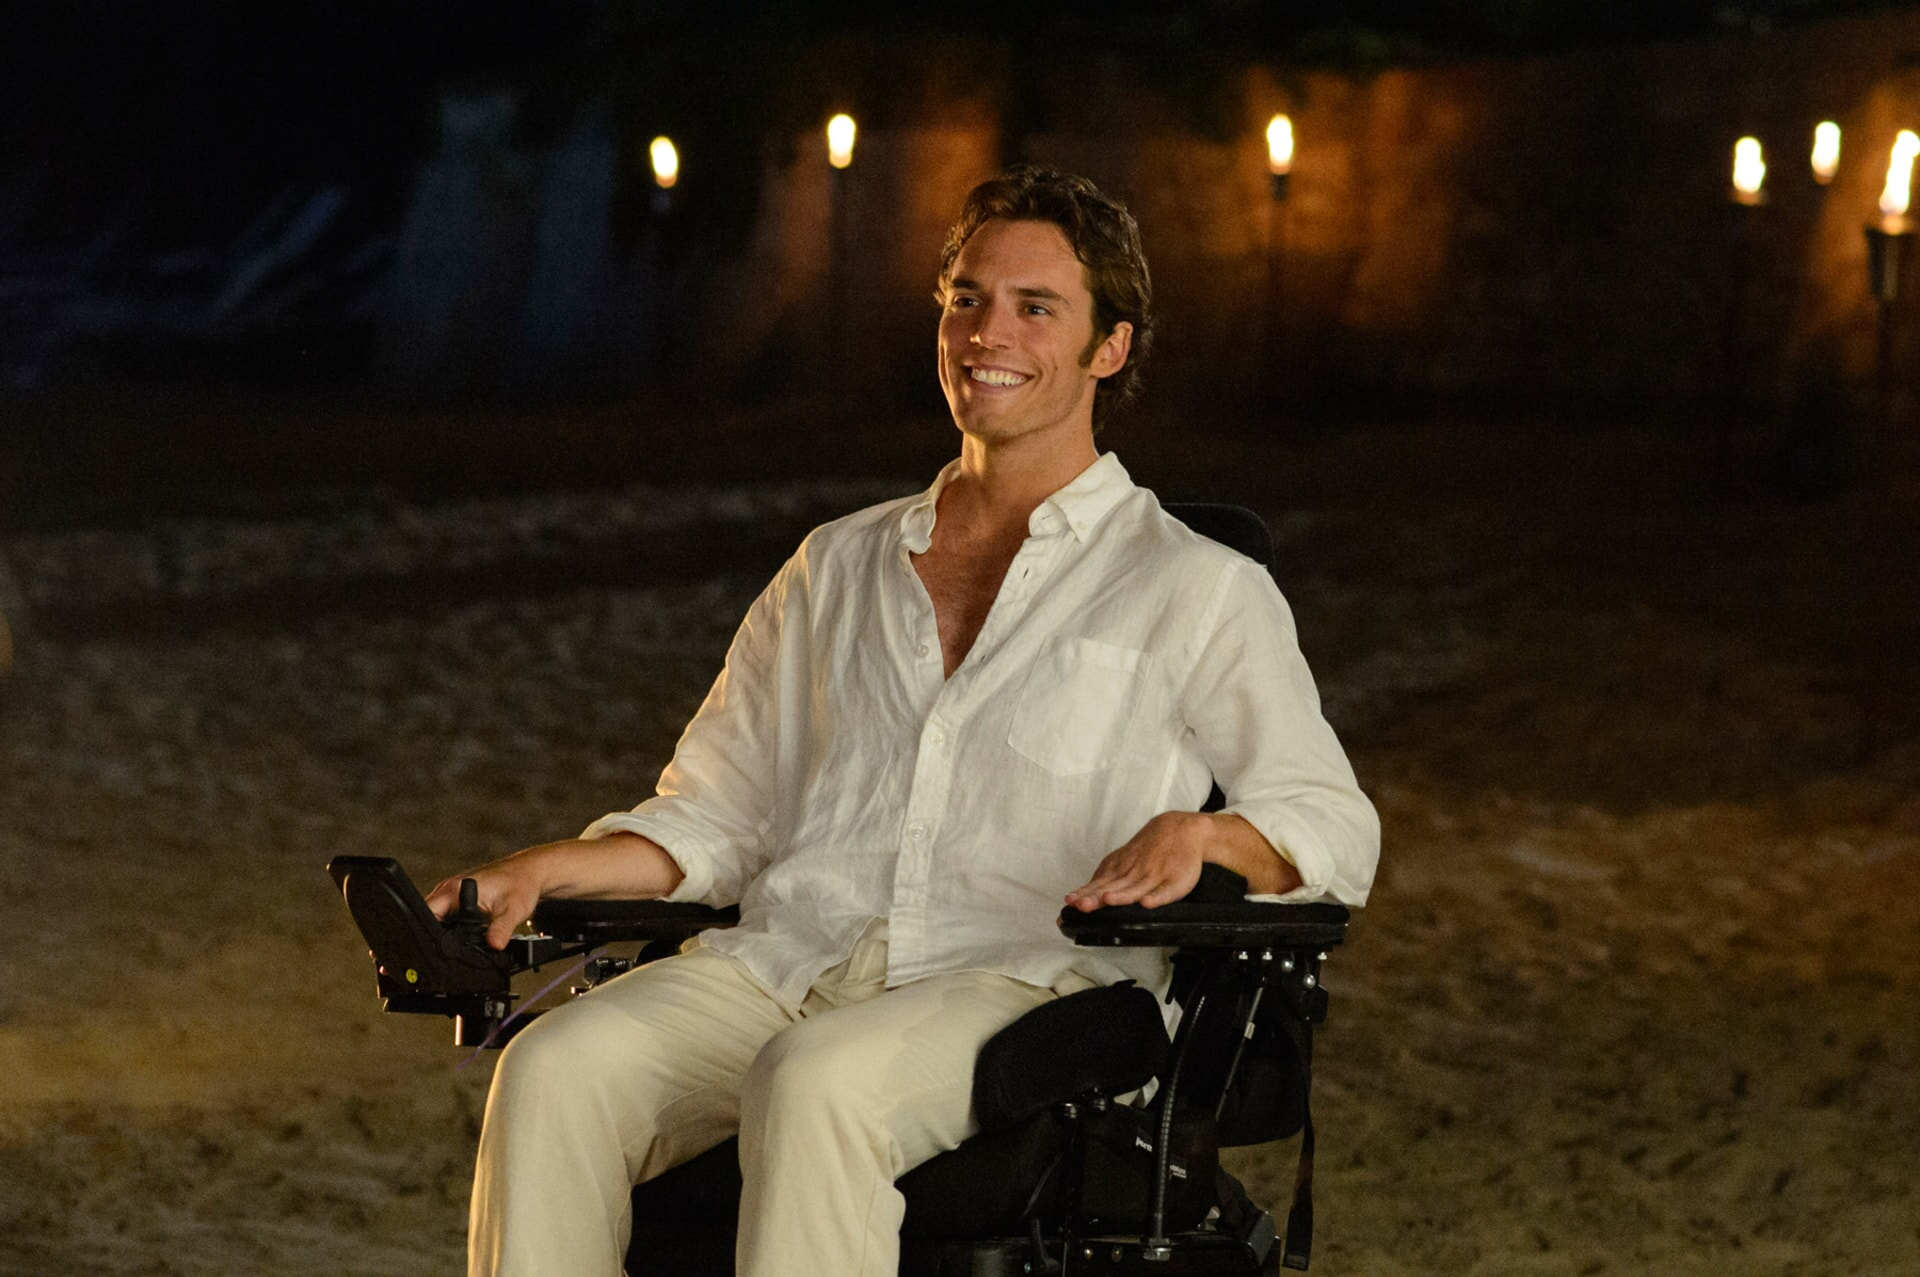 SAM CLAFLIN as Will Traynor on a beach at nighttime.